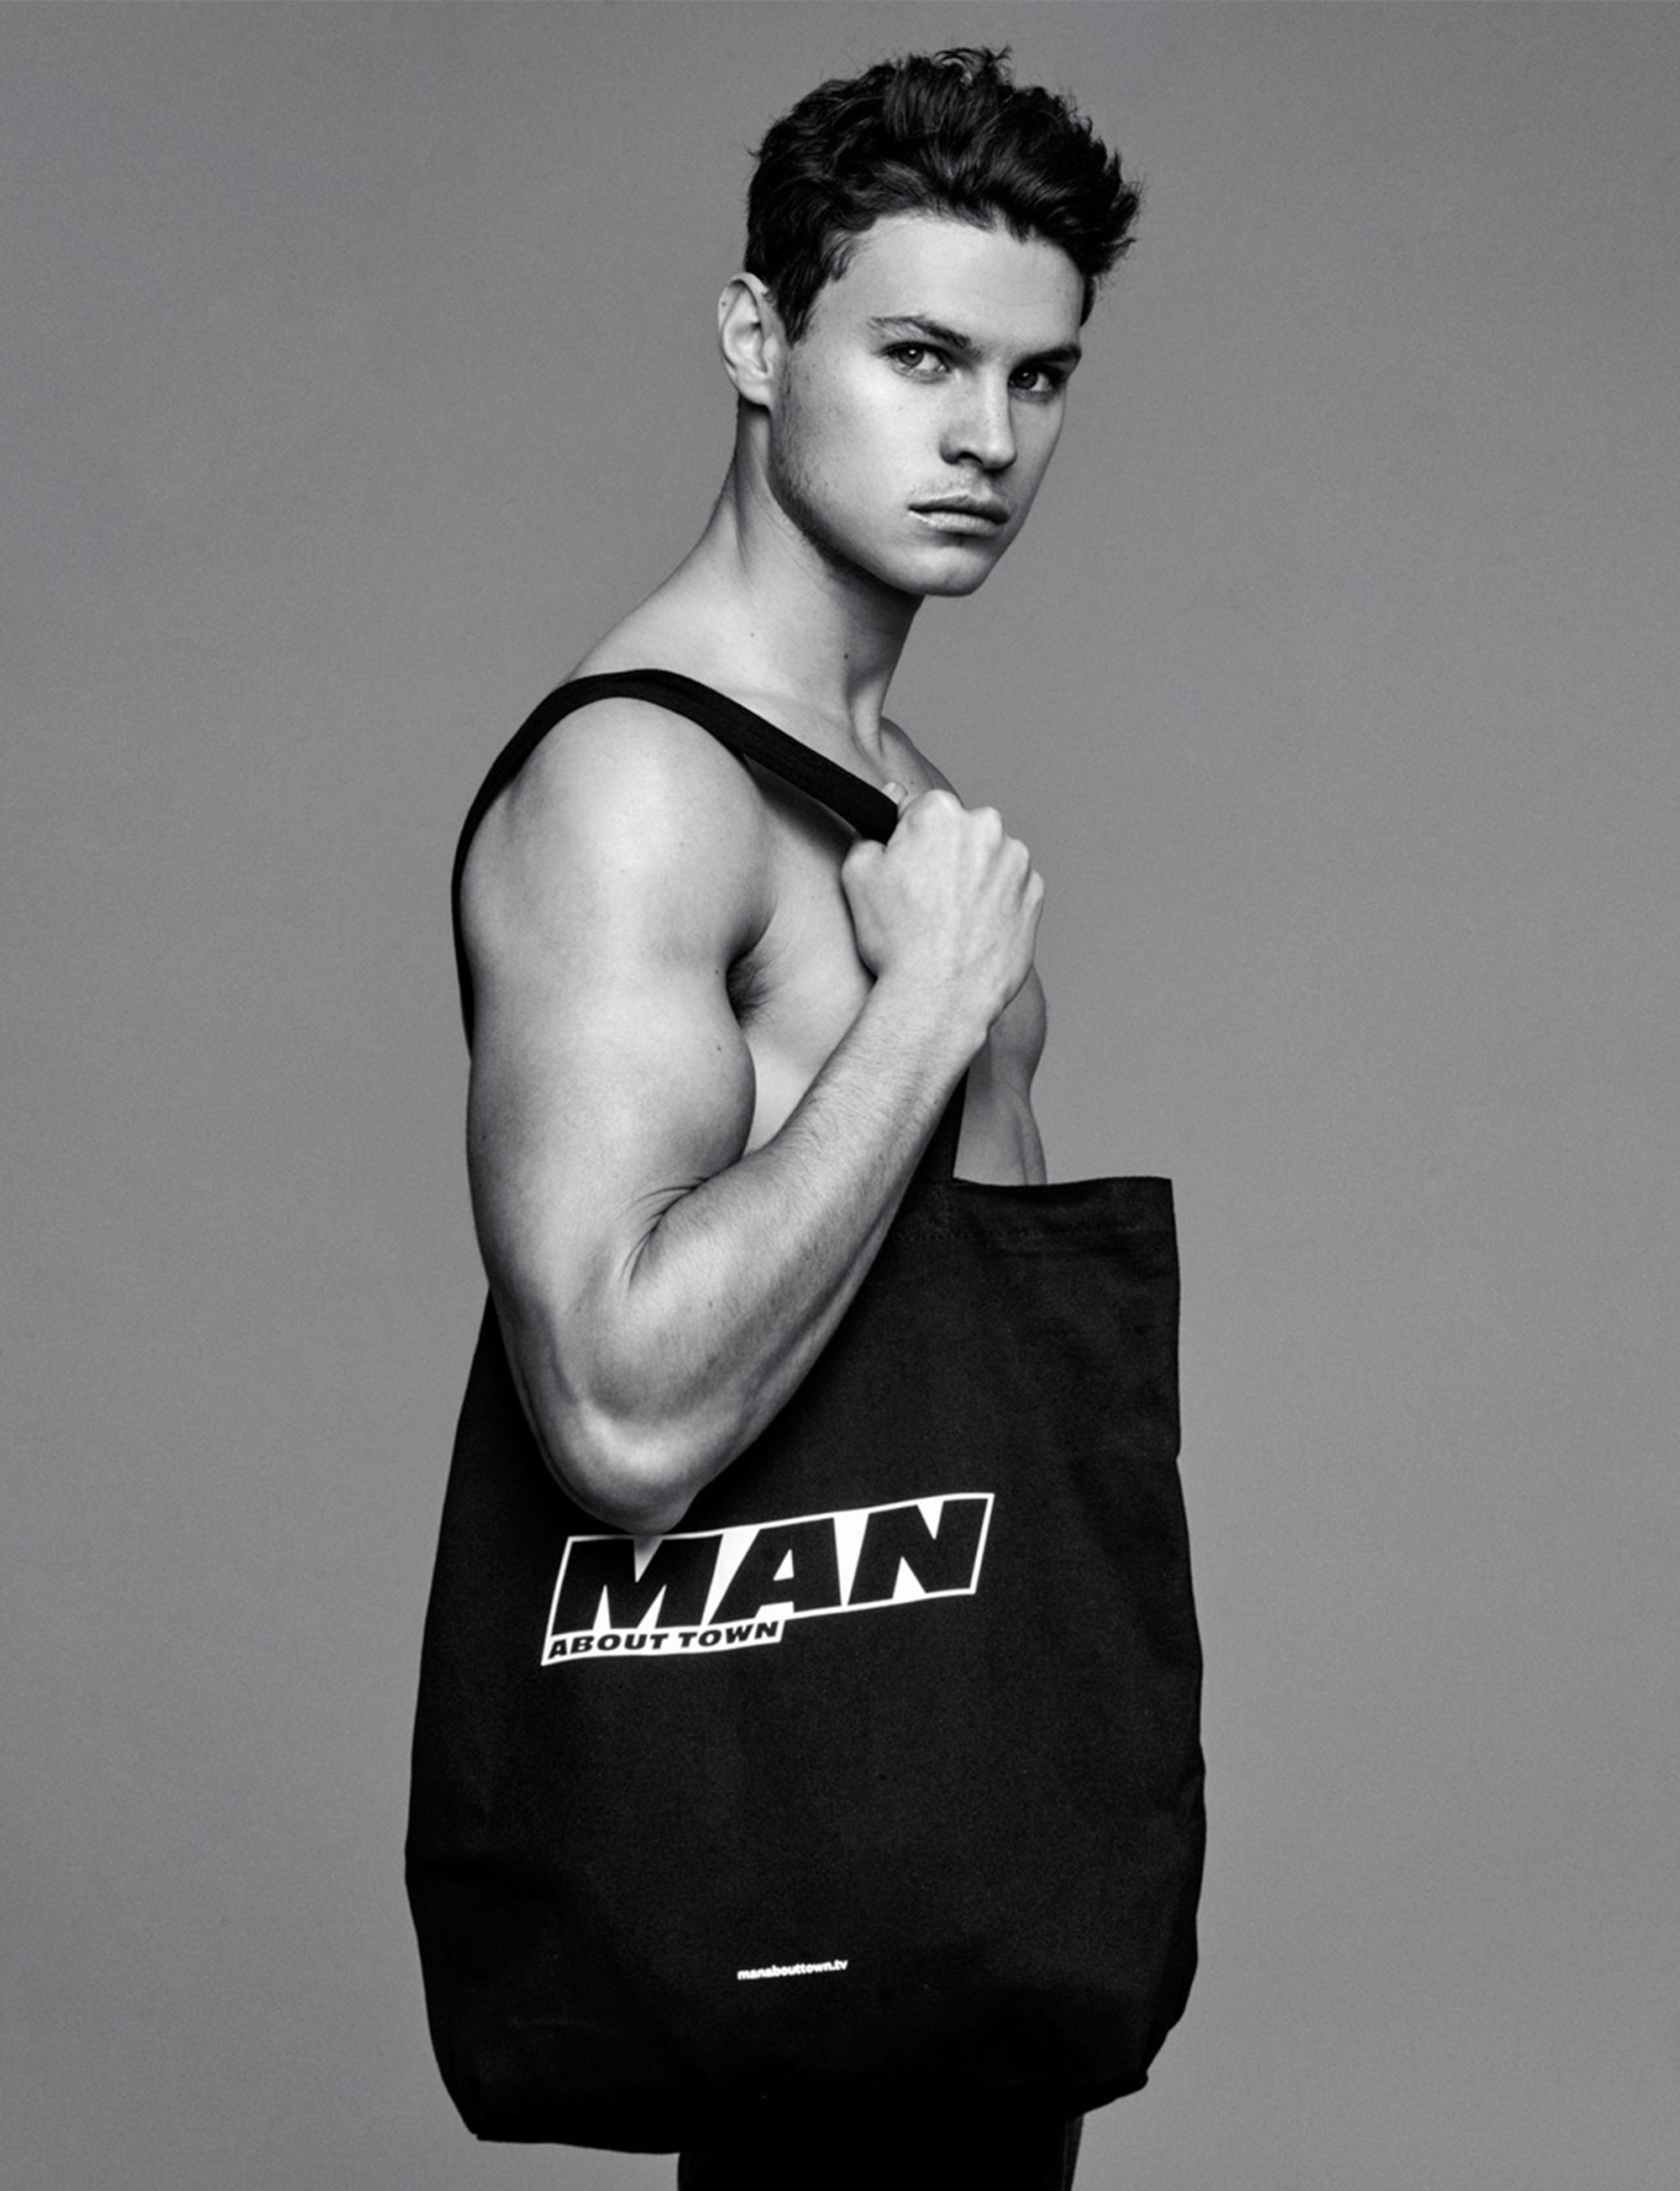 Man About Town tote bag with model